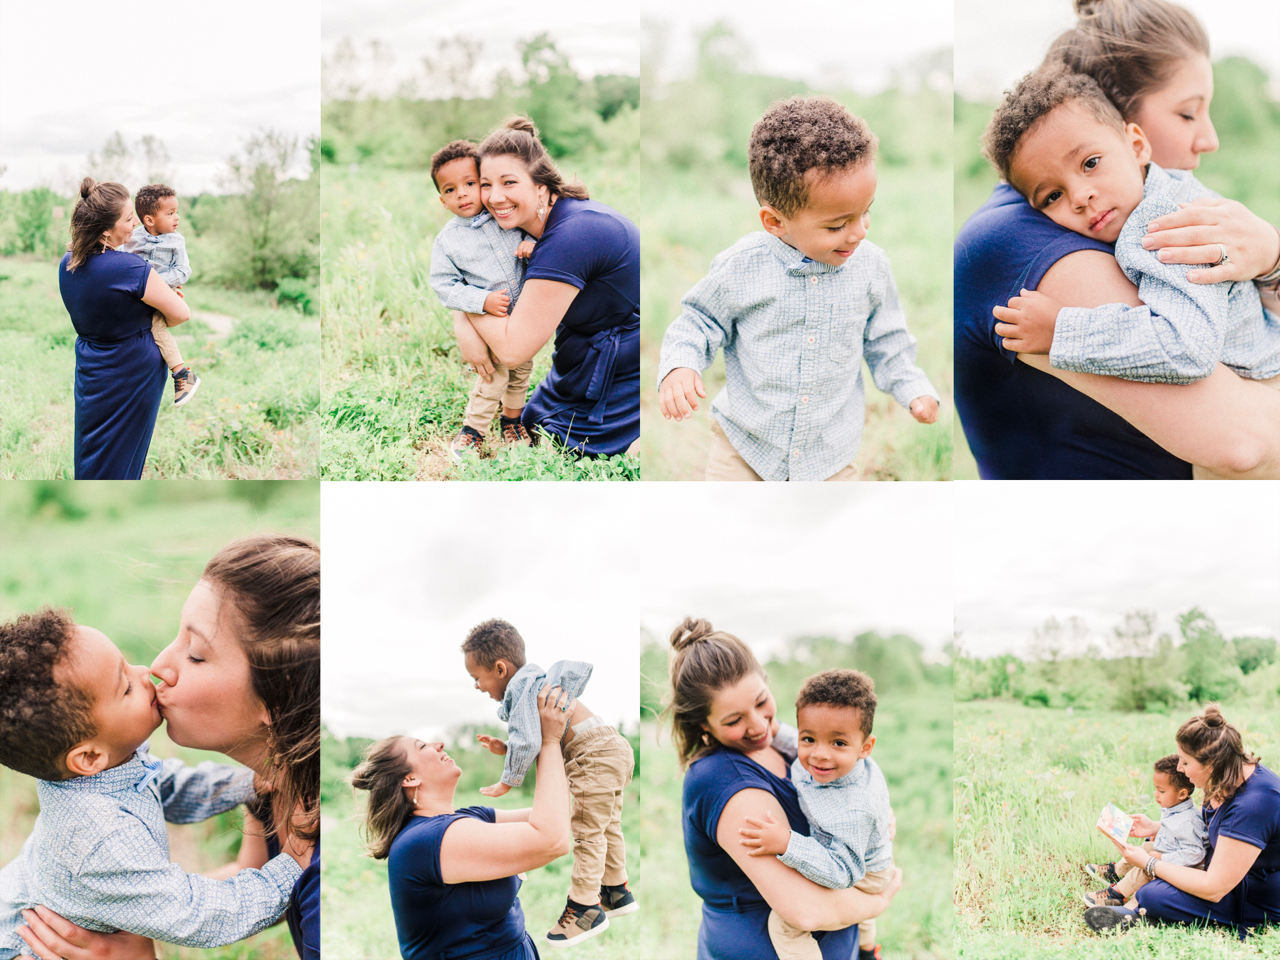 Beth + Teddy | A Fun Mommy & Me Mini Photography Session in Carmel, Indiana | Indianapolis Family Pictures